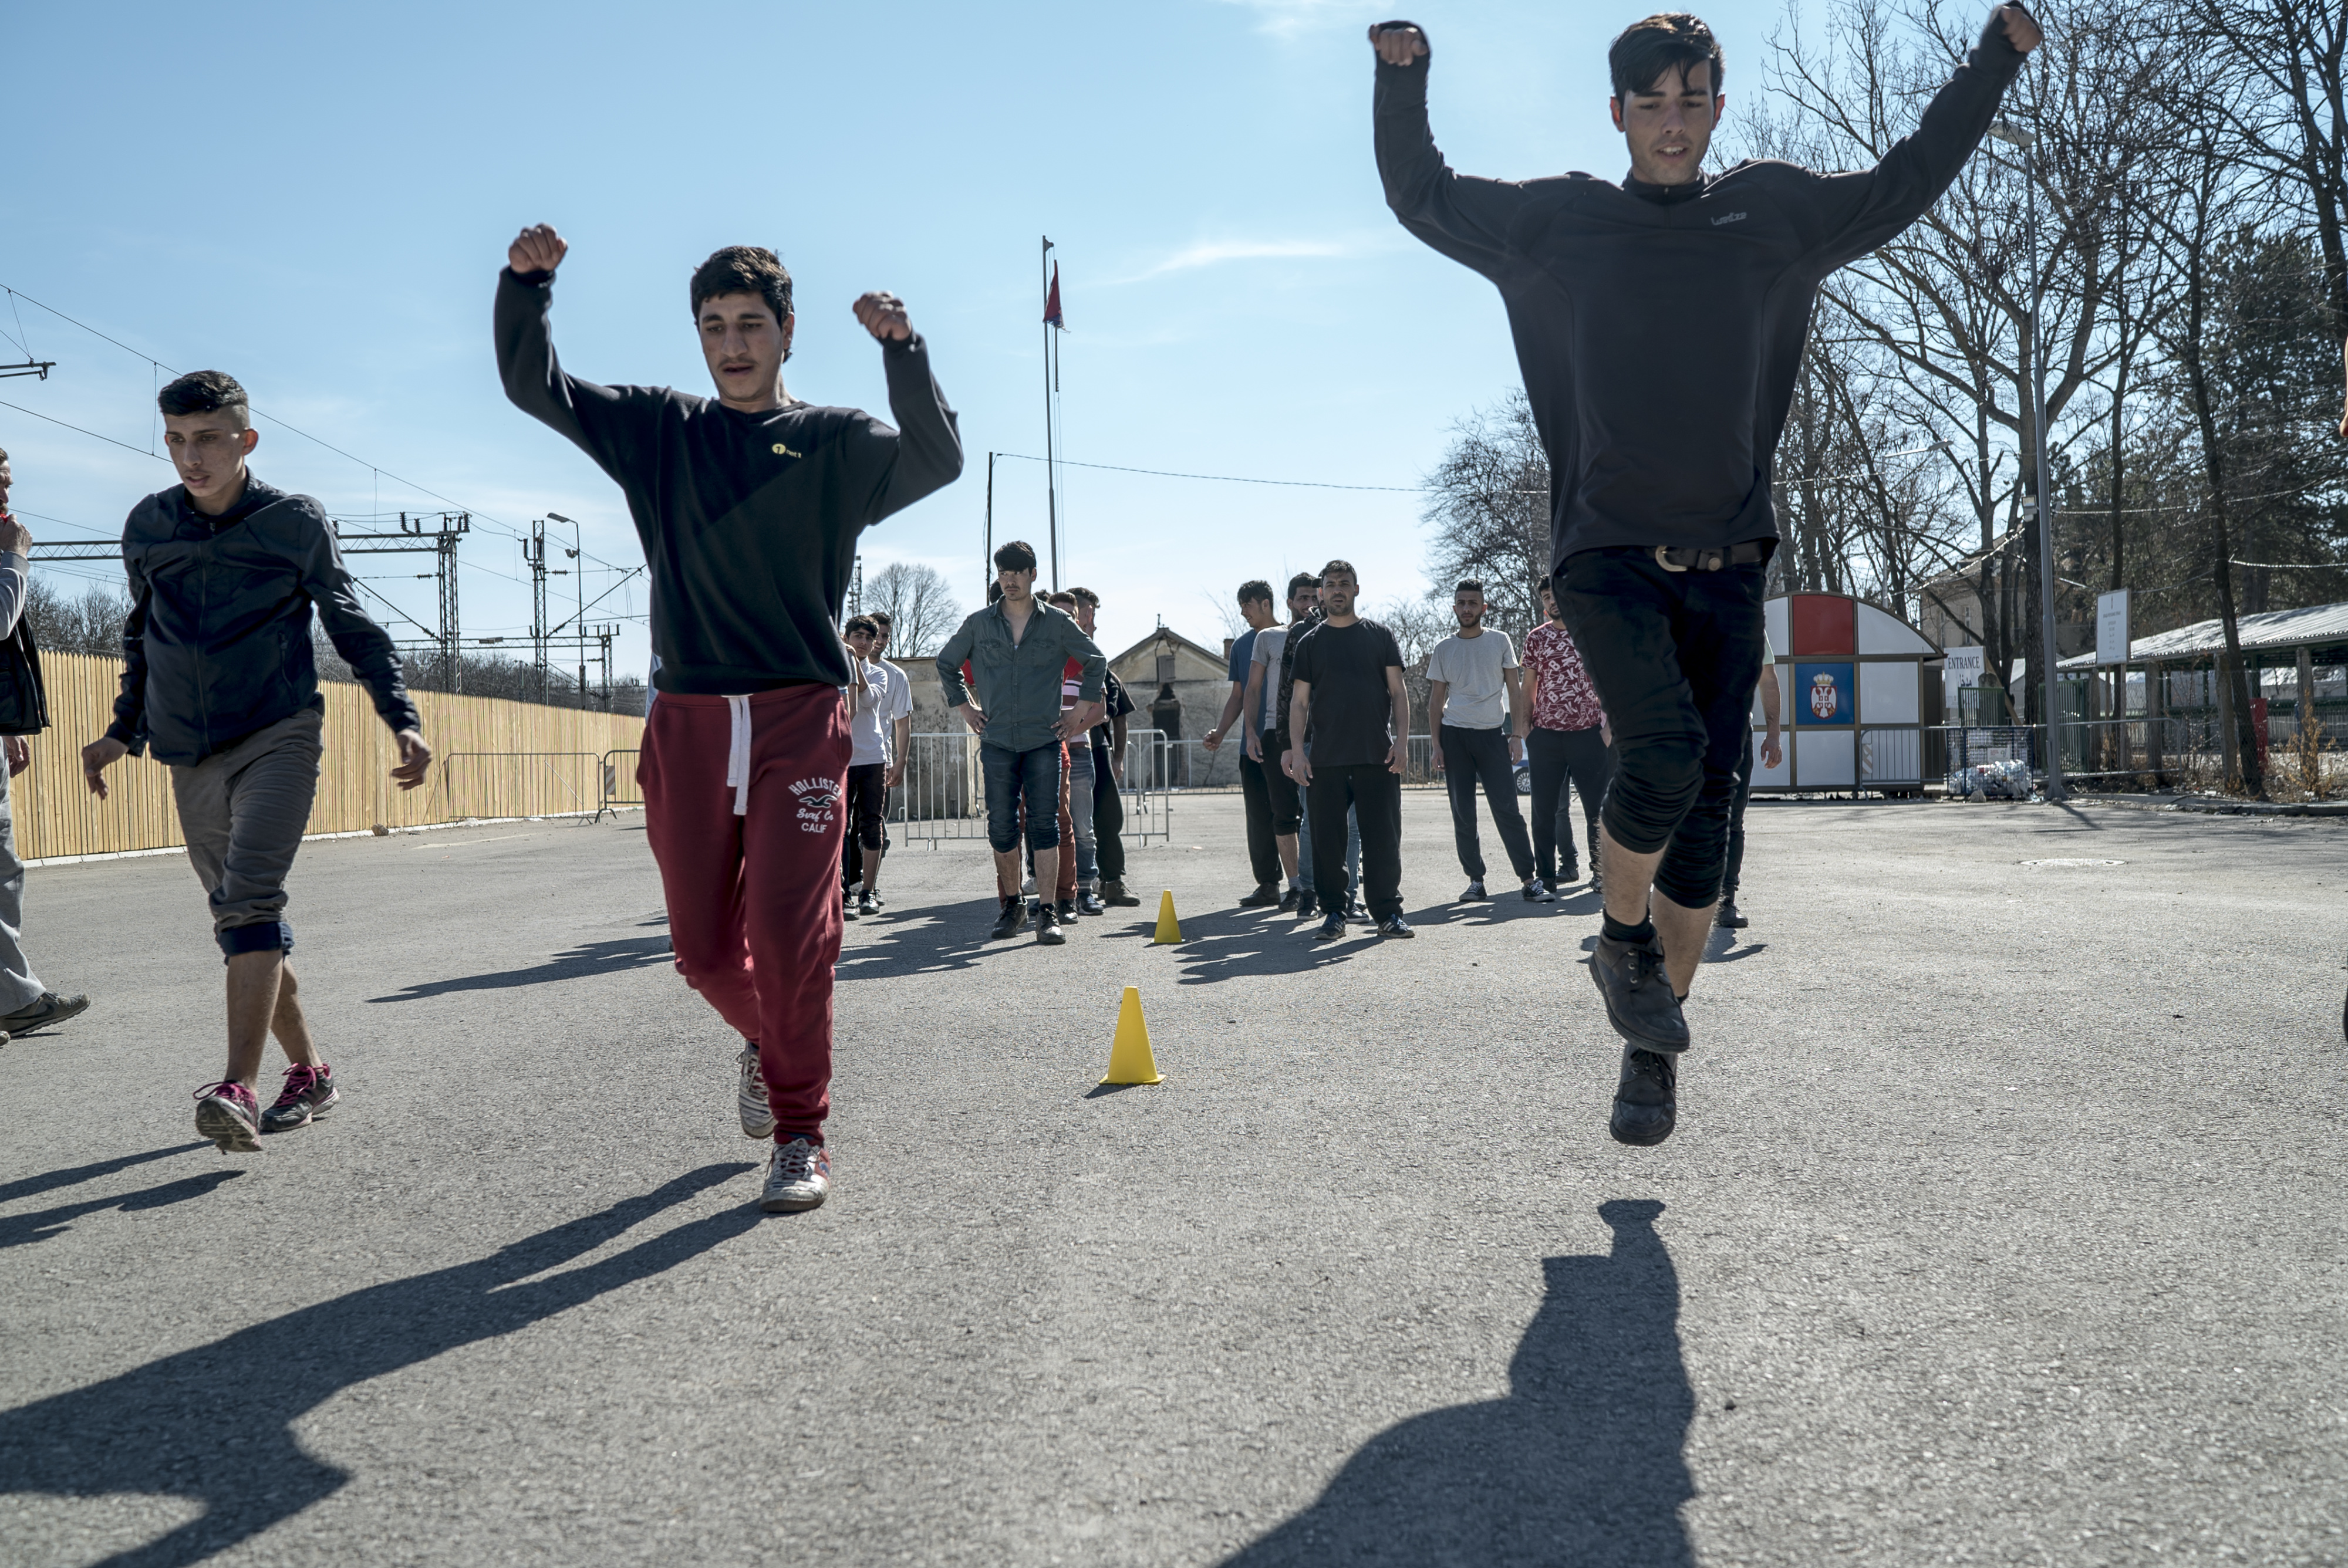 Boys exercising in a refugee camp in Serbia